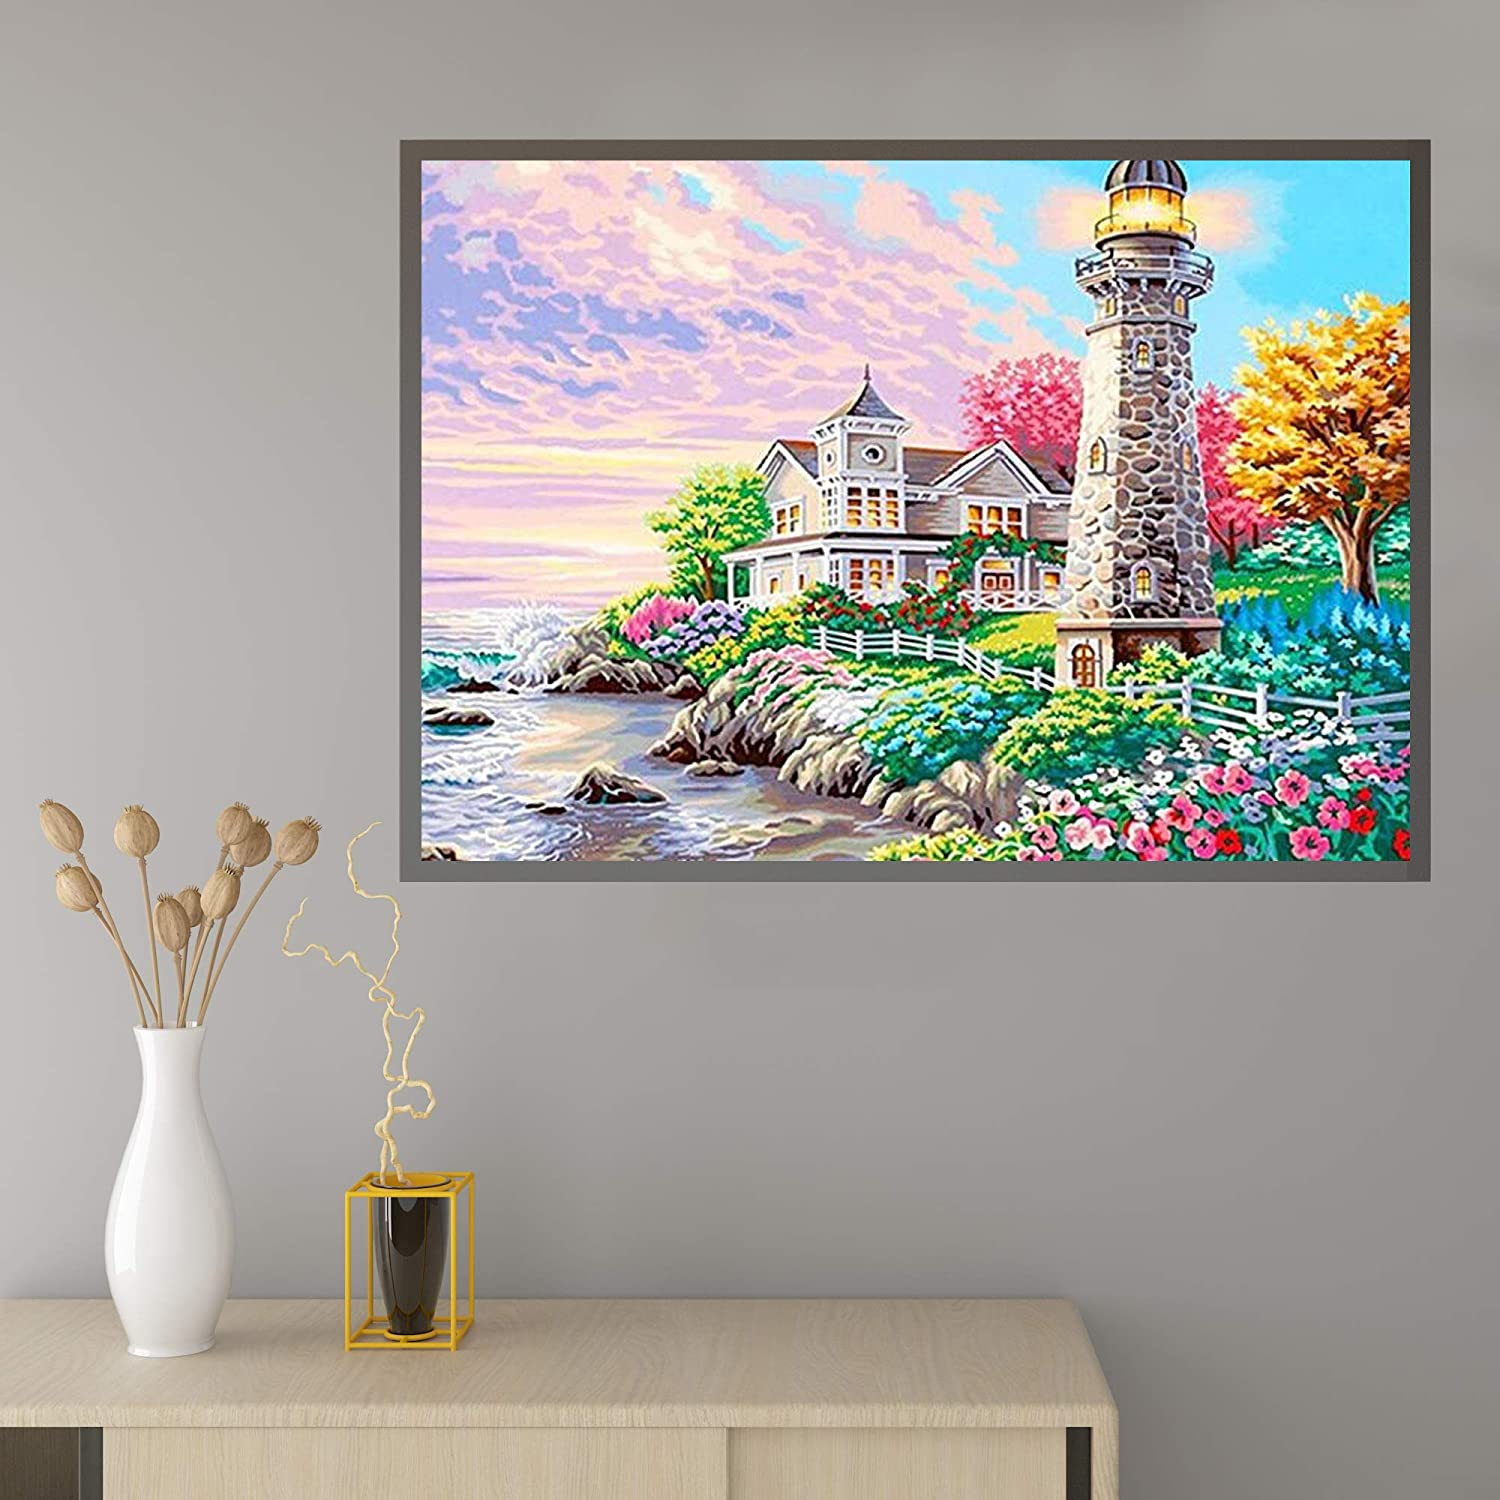 Round Full Drill Acrylic Embroidery Cross Stitch Arts Craft Canvas Supply for Home Wall Decor Adults and Kids 11.8X15.8inches DIY 5D Diamond Painting Kit